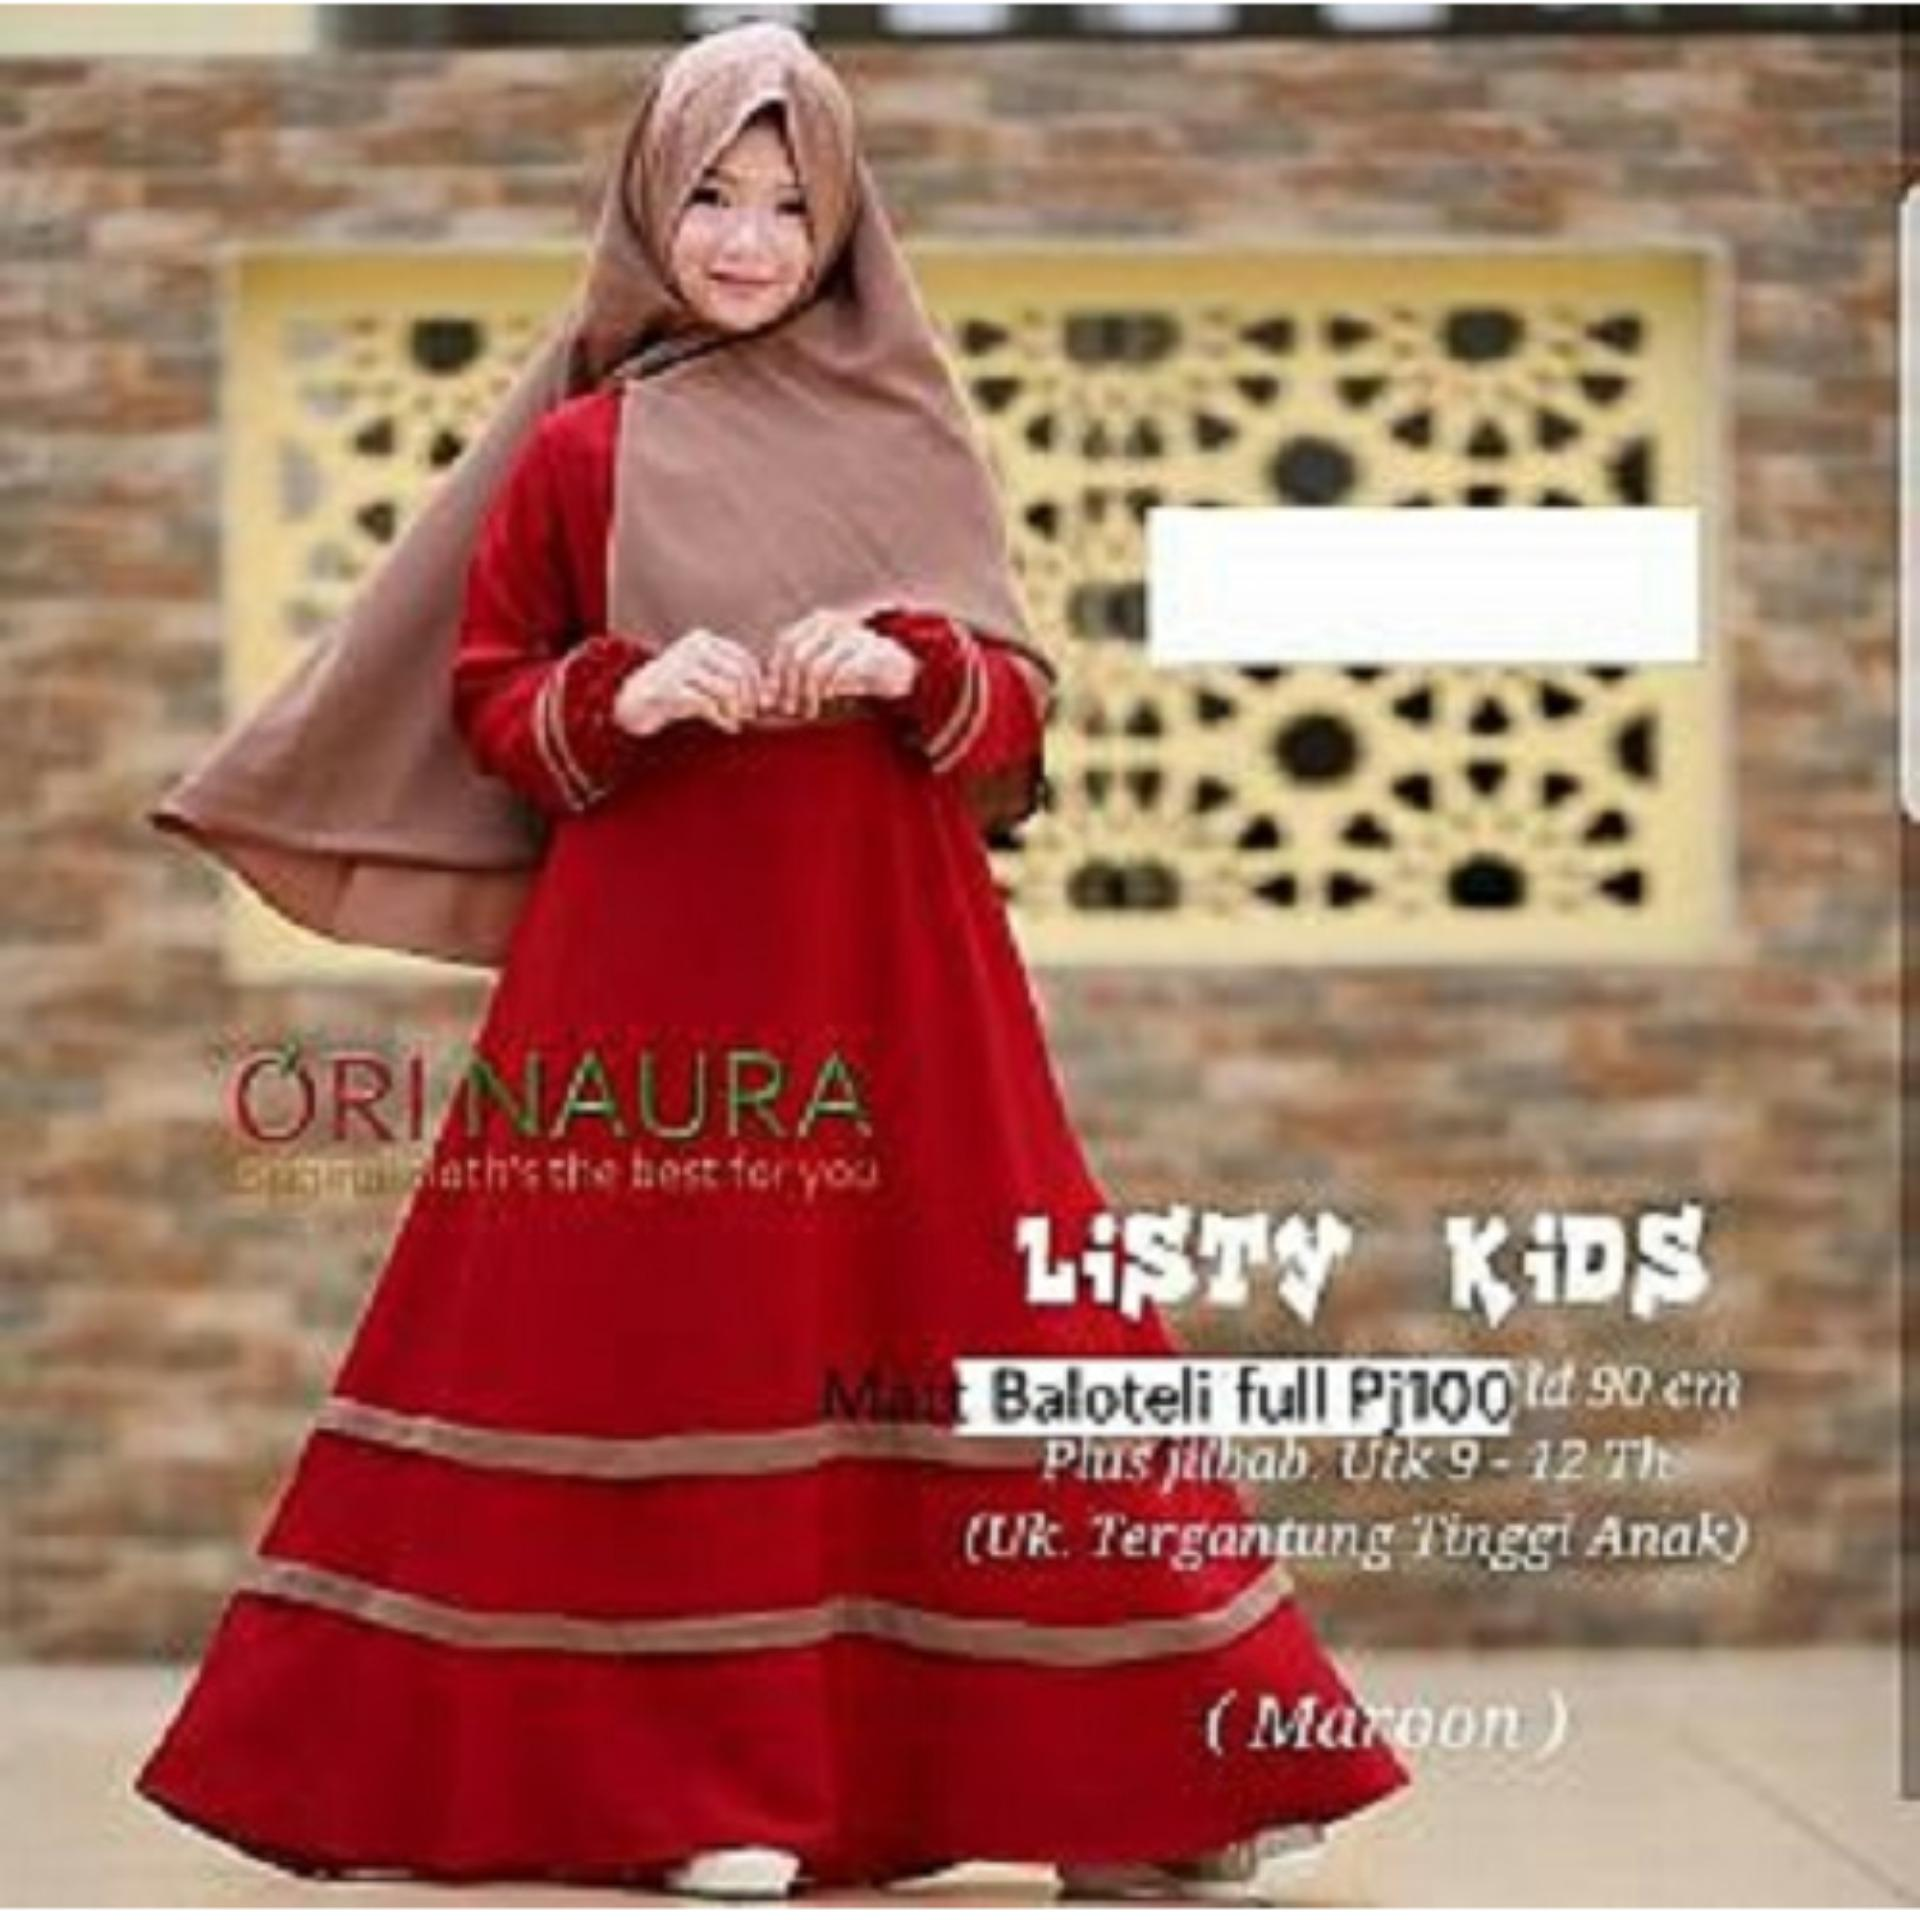 ALL FREE SHOP - Pakaian Anak Perempuan Fashionable - Gamis Kids - Kid Listy